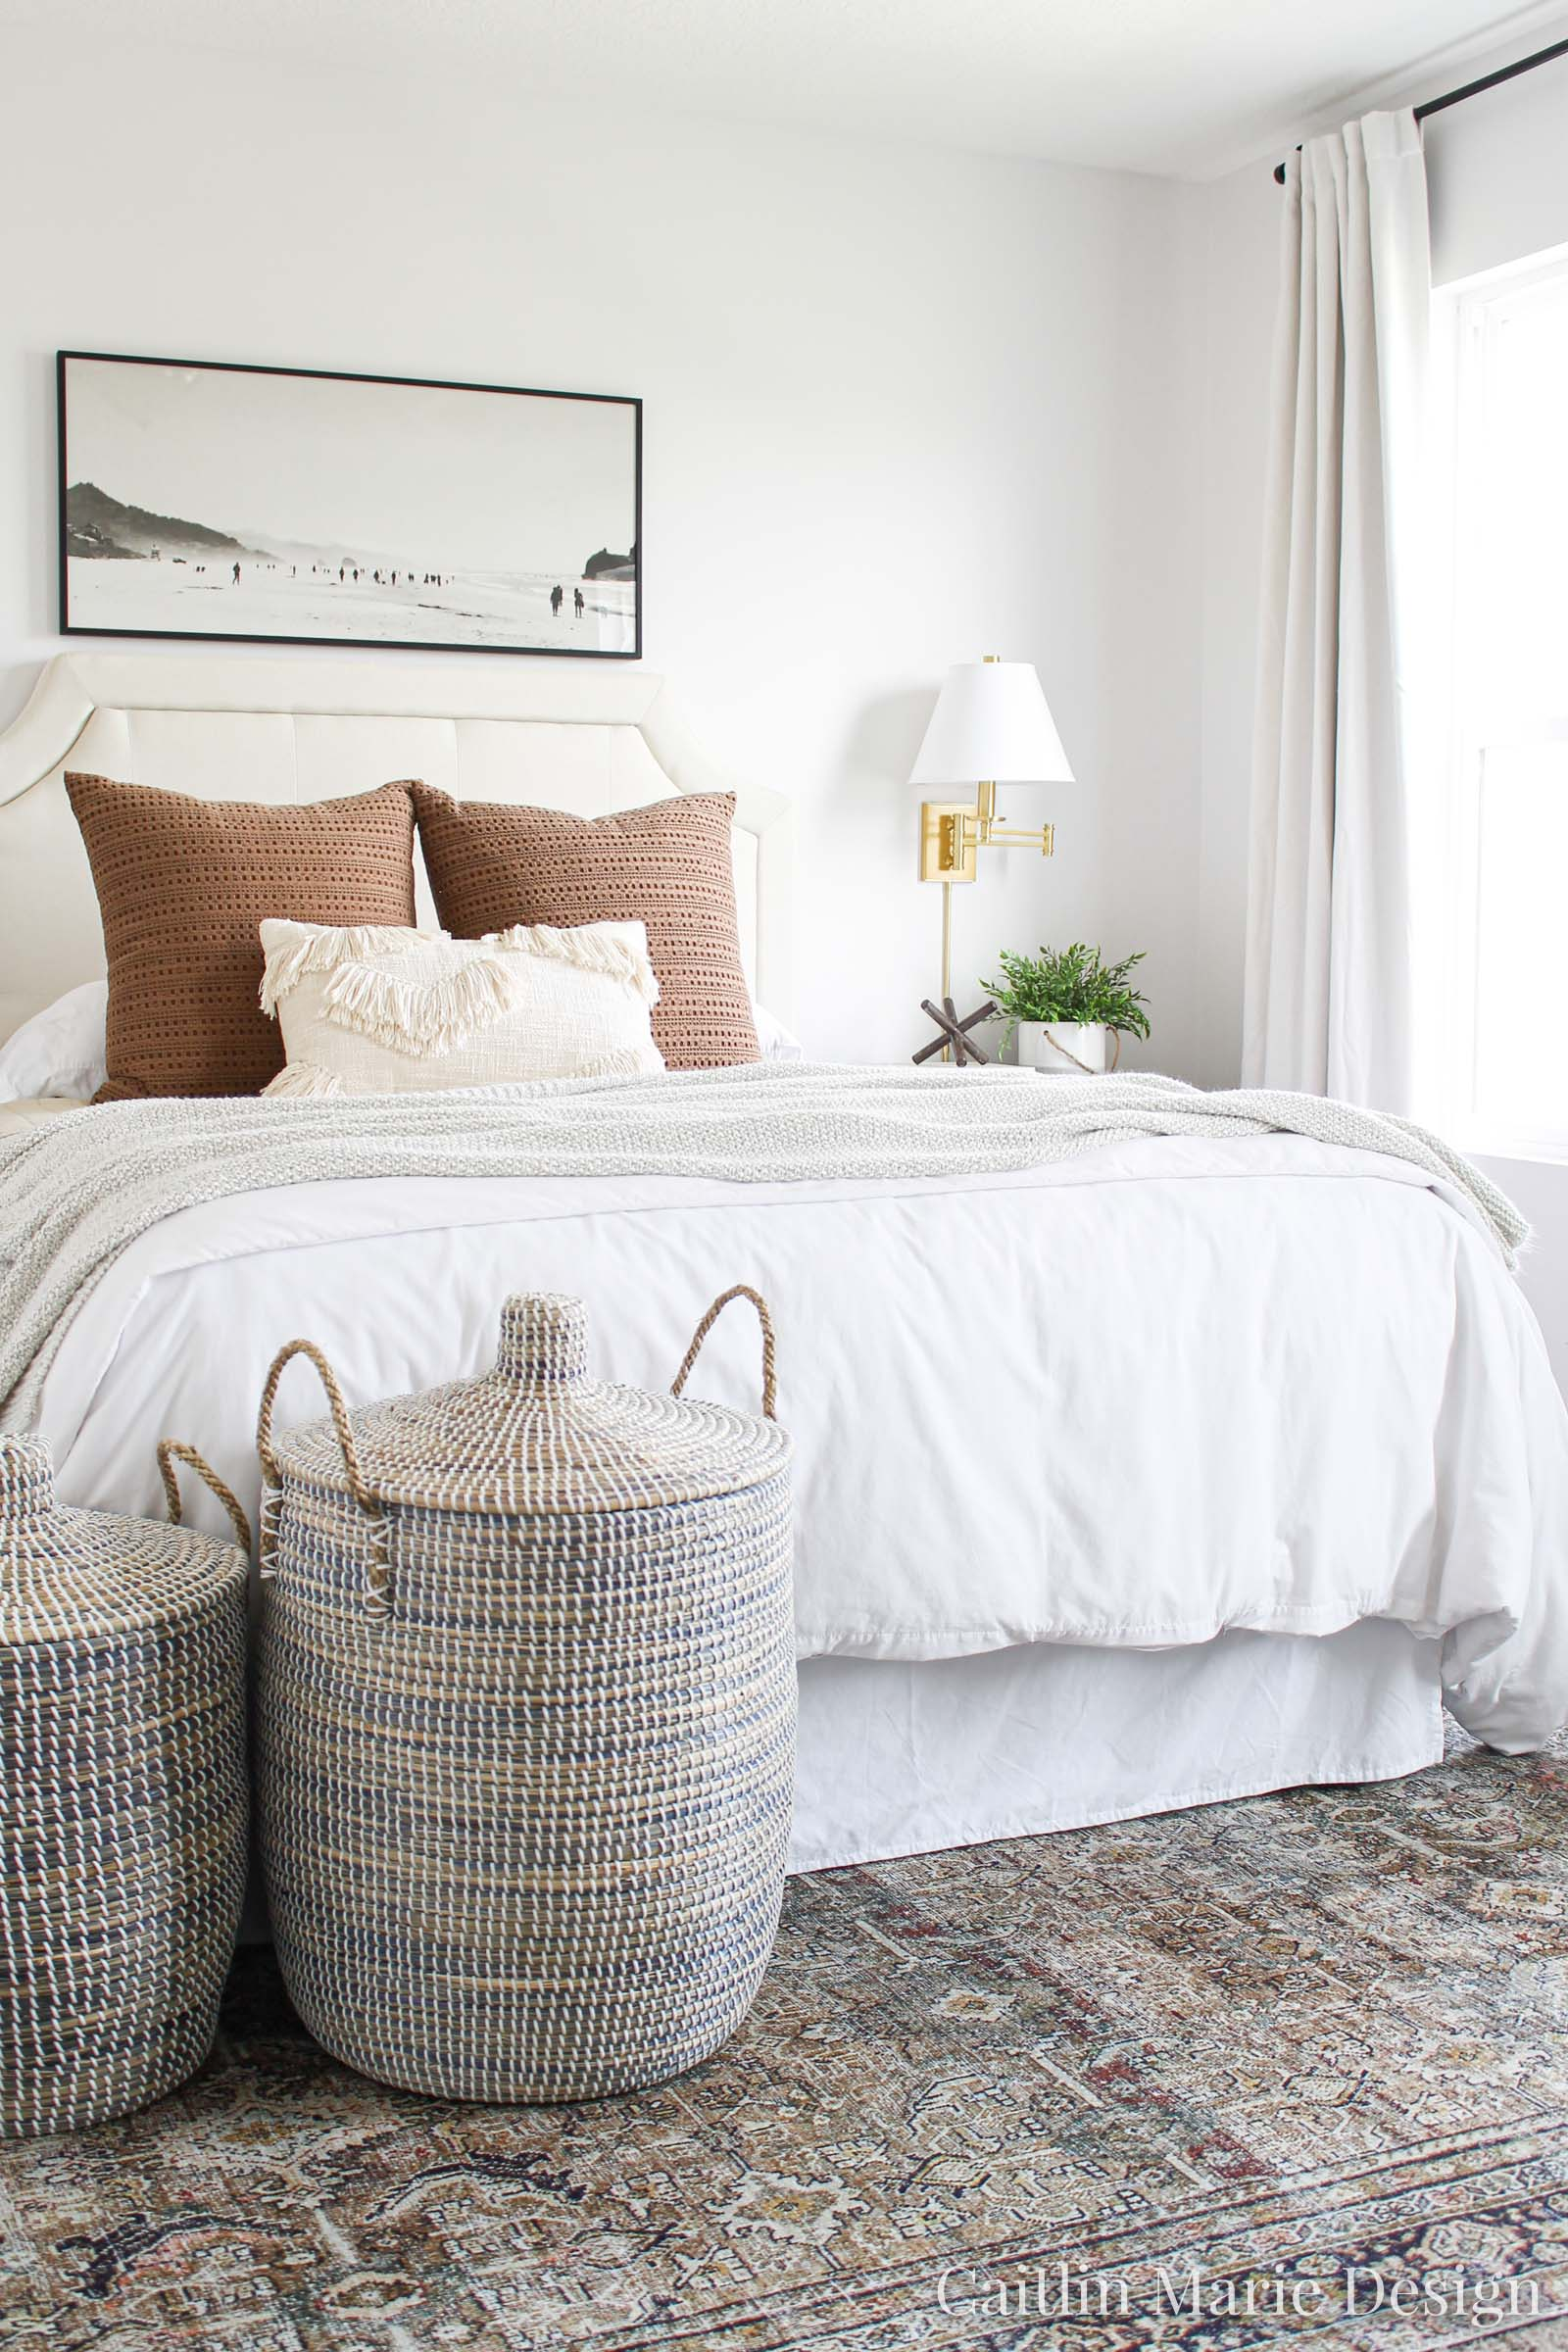 One Room Challenge Fall 2019 Reveal | modern traditional bedroom decor, modern boho, landscape painting, brass sconces, textured bedding